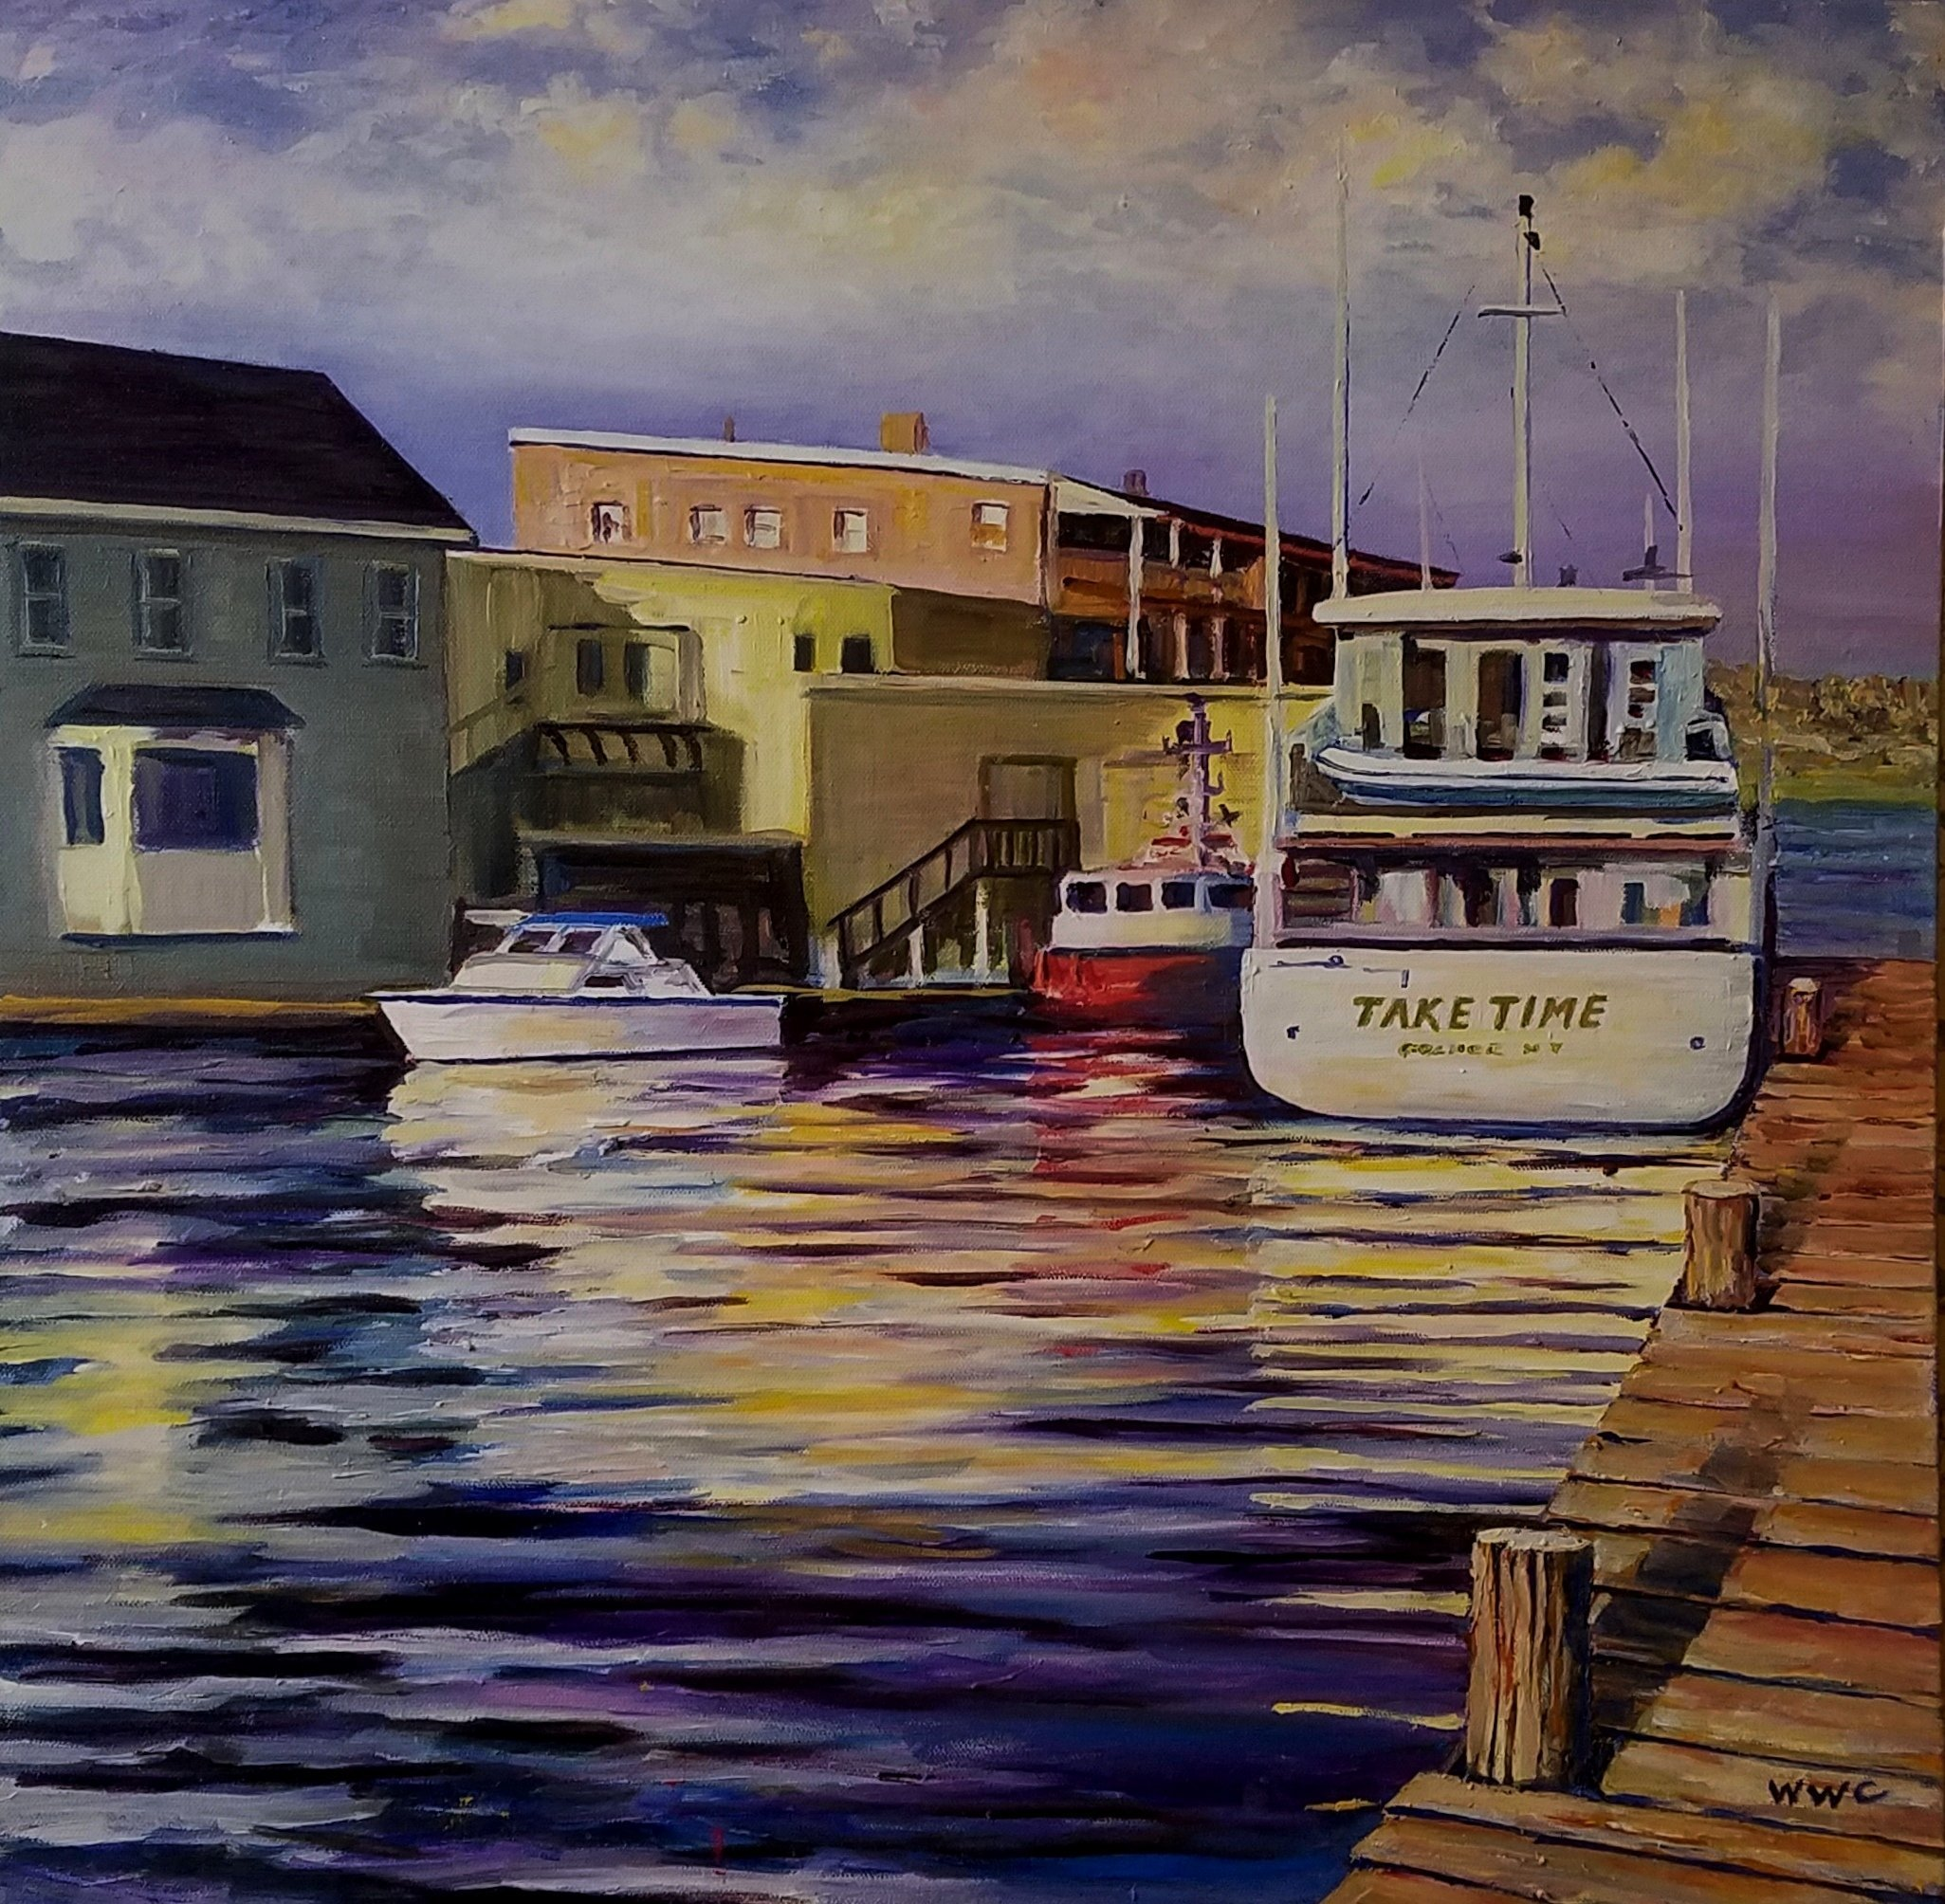 William Christopherson: 'dawn at clayton docks', 2019 Oil Painting, Landscape. A sunrise scene in the Thousand Islands of Upstate NY.  Remindfull of those important slower days to relax and enjoy the beauty of the earth.  Completed in Grumbacher oils, in hardwood professional floater frame.  Wall ready.  Award winning artwork at 2019 Along the Rivers Edge, TI Arts Center.  Ships UPS, ...